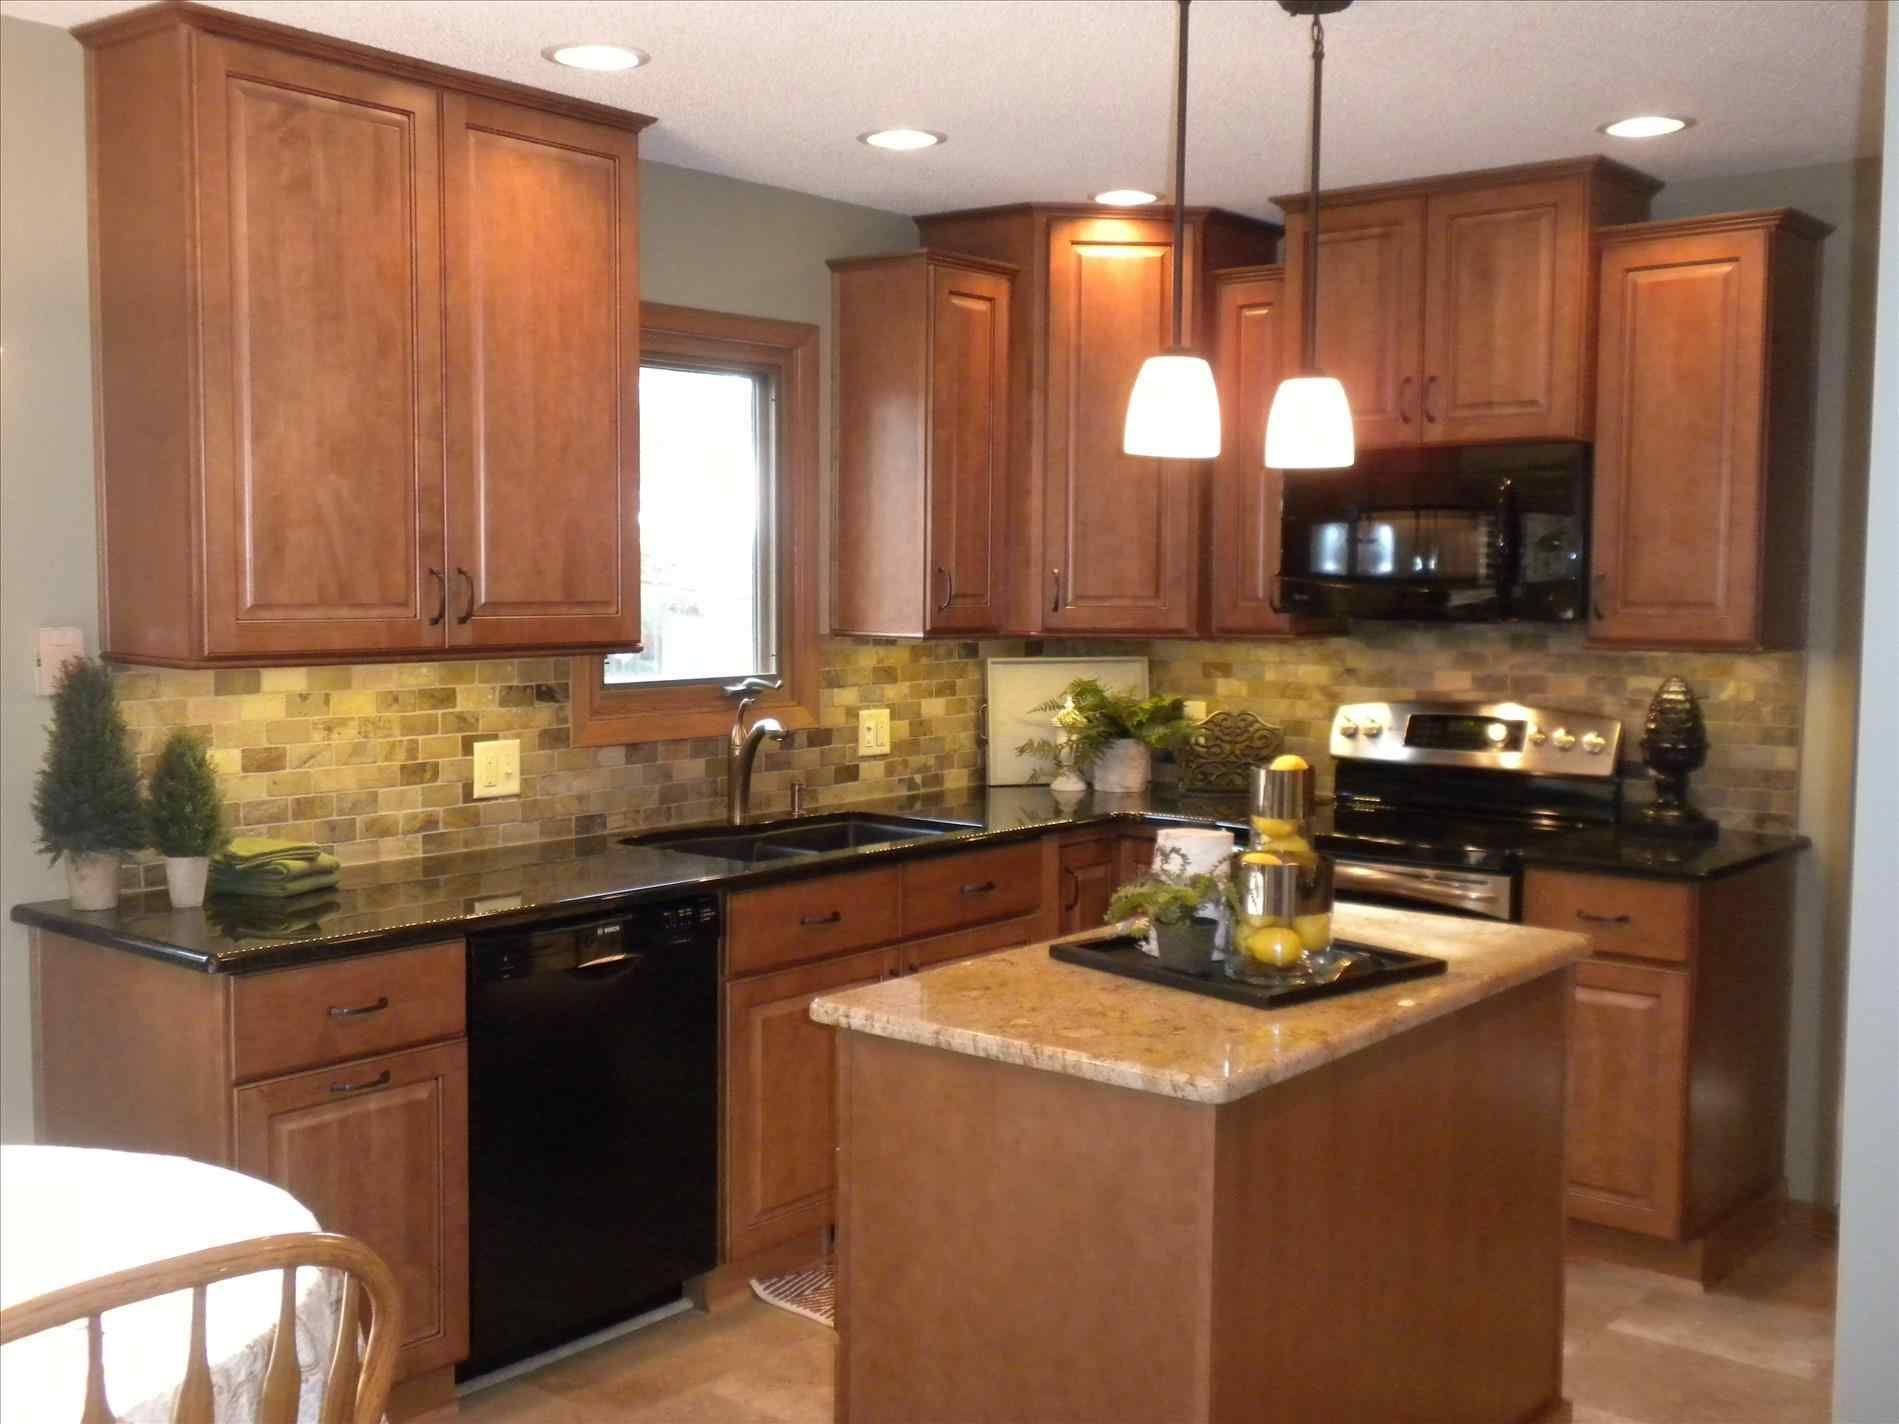 Black Stainless Steel Appliances With Oak Cabinets Colors